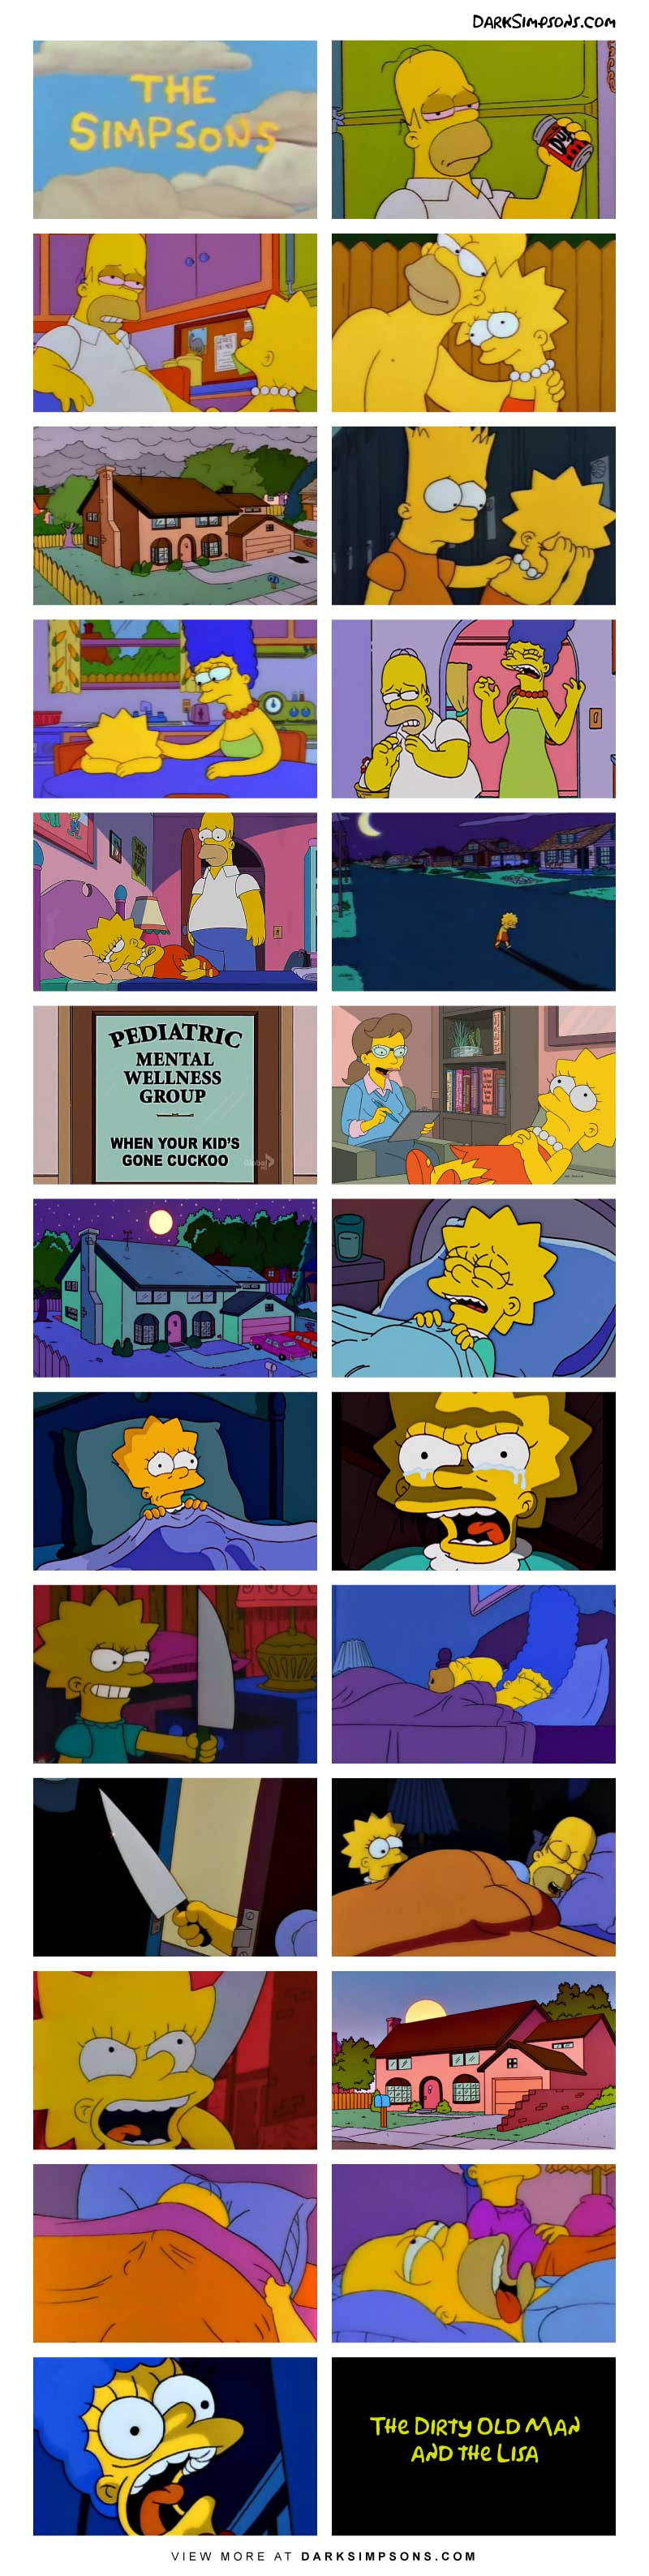 It's a weeknight and Homer is a home enjoying a few drinks. Before you know it, he is sloppy drunk. He then makes an unforgivable mistake and that scars Lisa. Things will never be the same in the Simpson house.